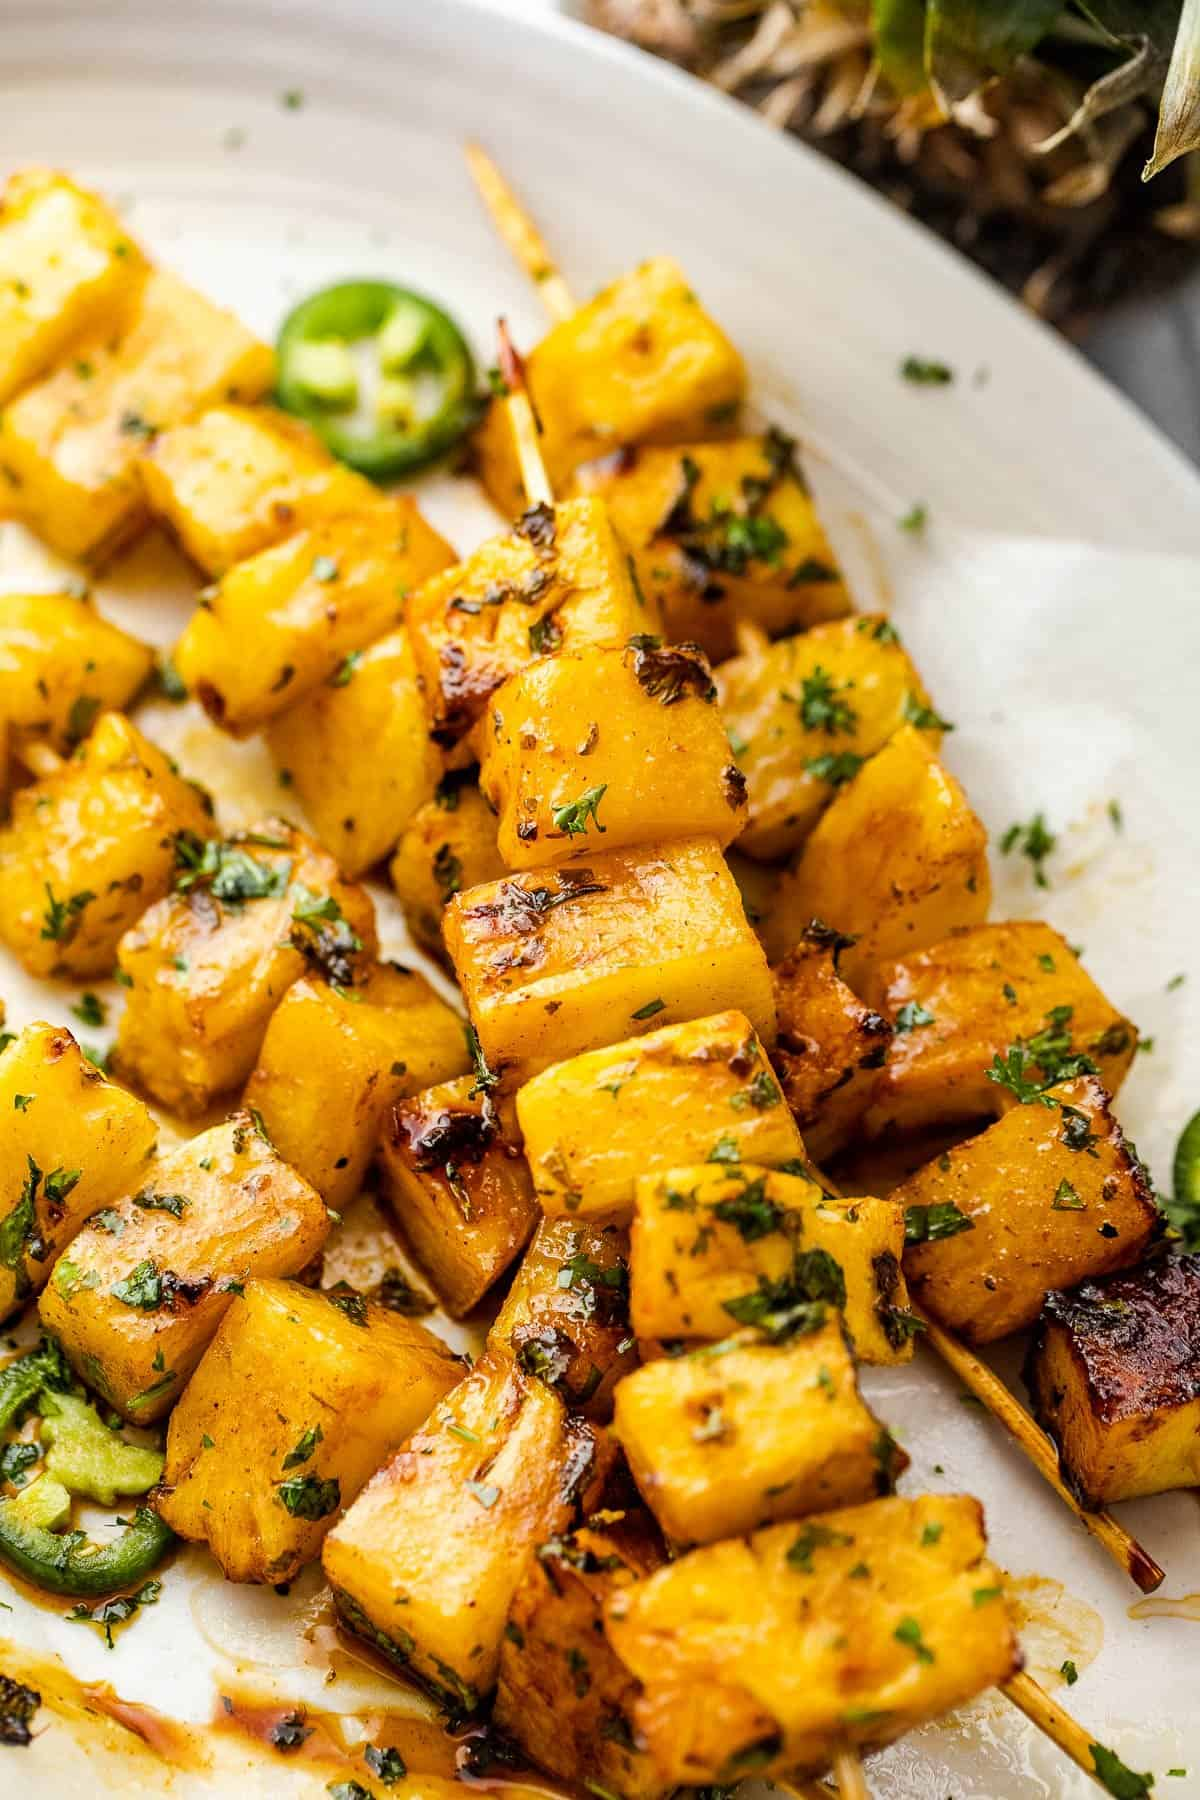 Tequila Grilled Pineapple Skewers served on a long white plate